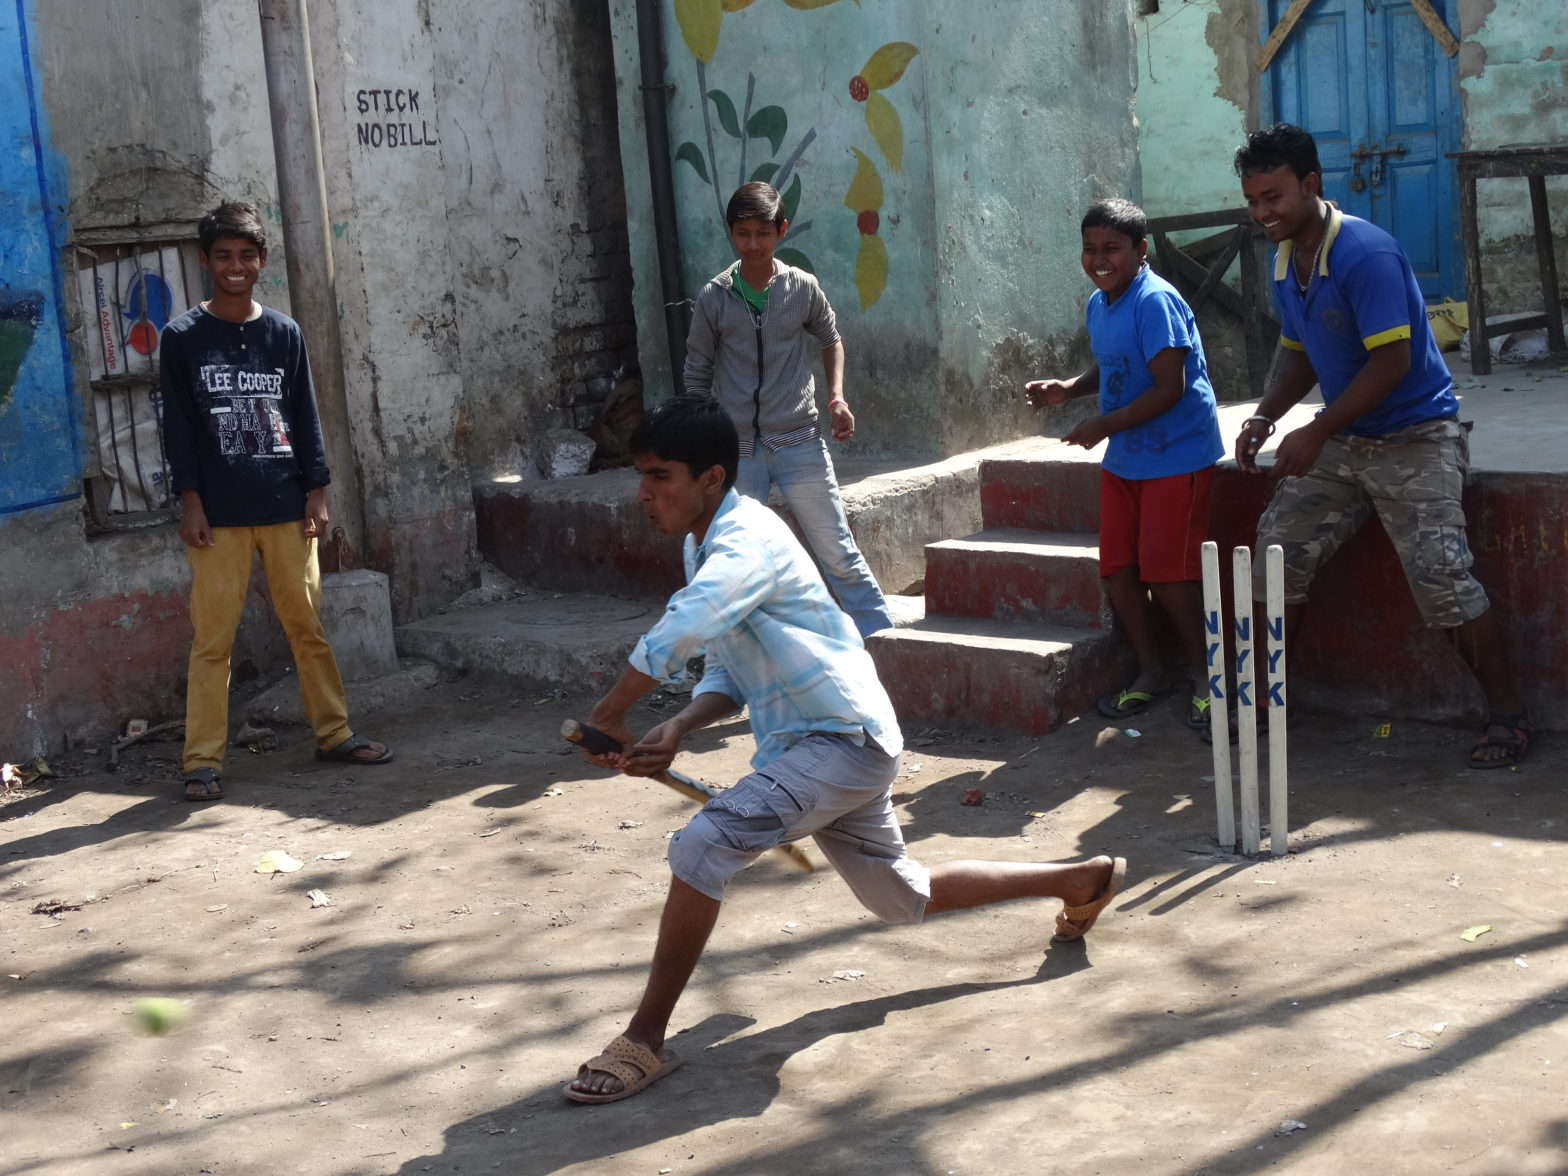 Street cricket chronicles: Deuce ball, Cambis ball, Wall out, Half out, and the great Olympian spirit of West Bengal